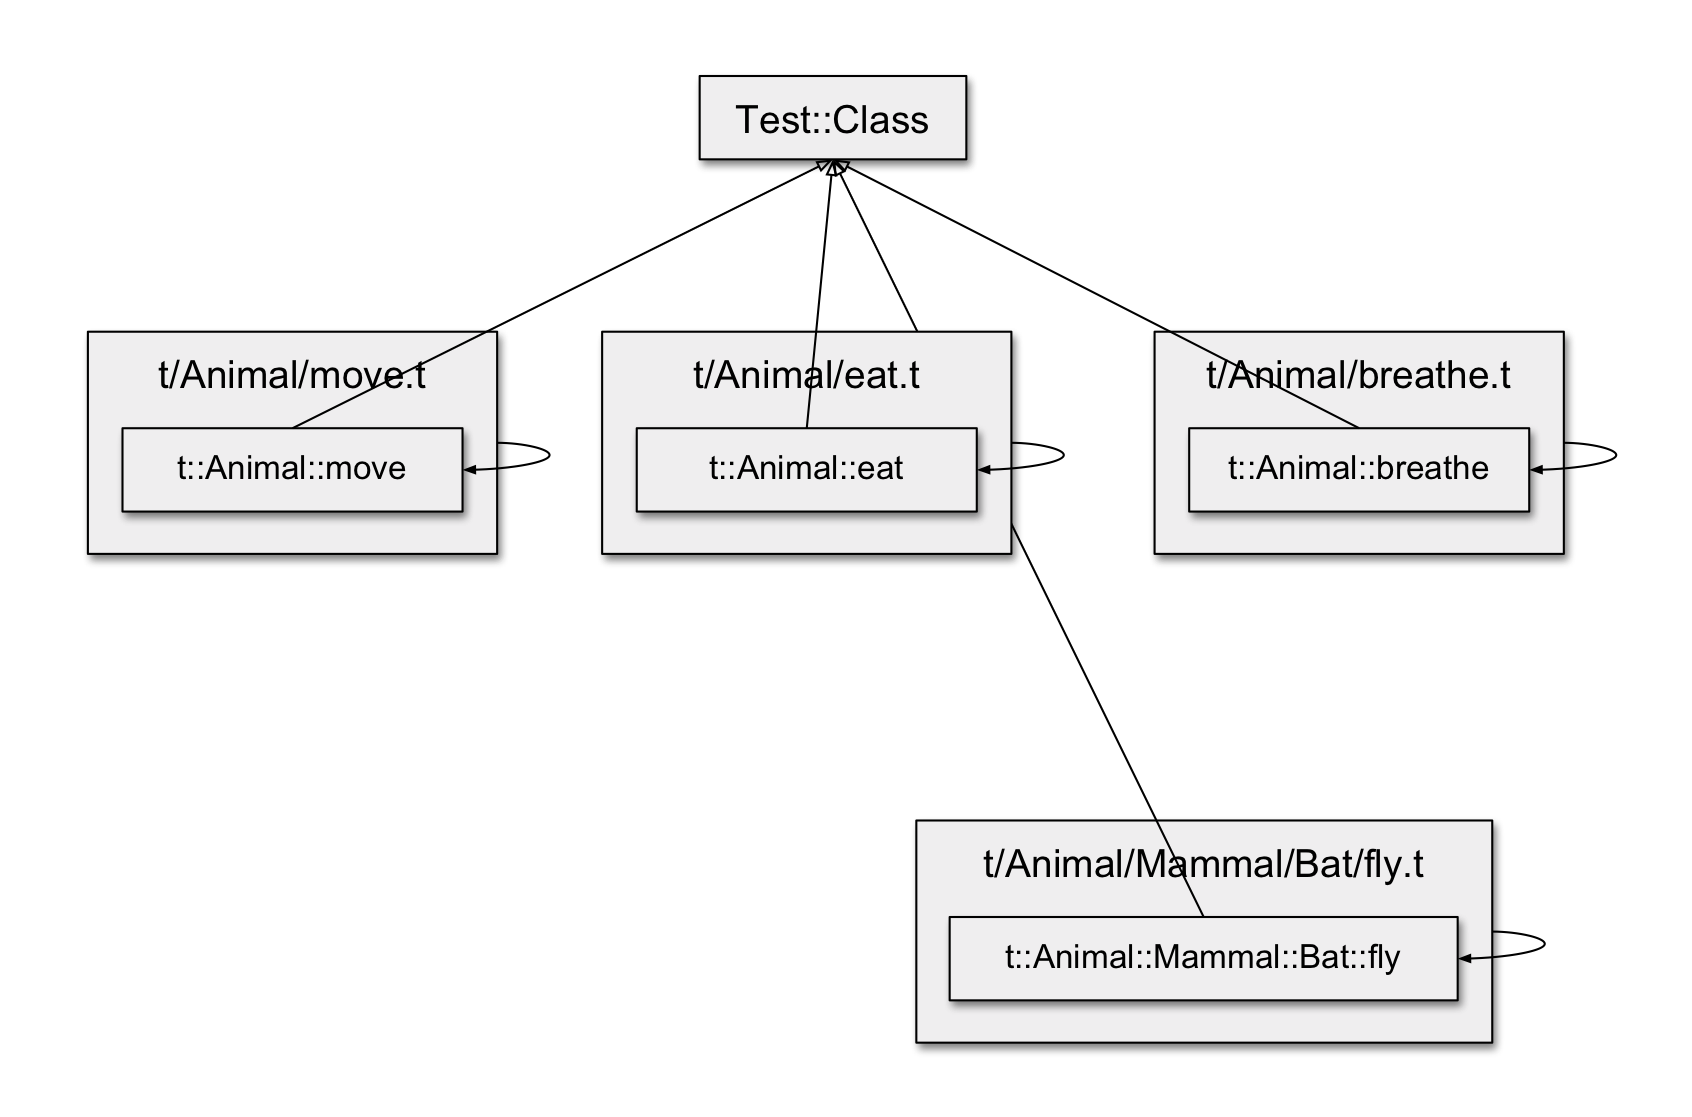 http://blogs.perl.org/users/tim_king/2018/05/24/Our-Test__Class-hierarchy.png